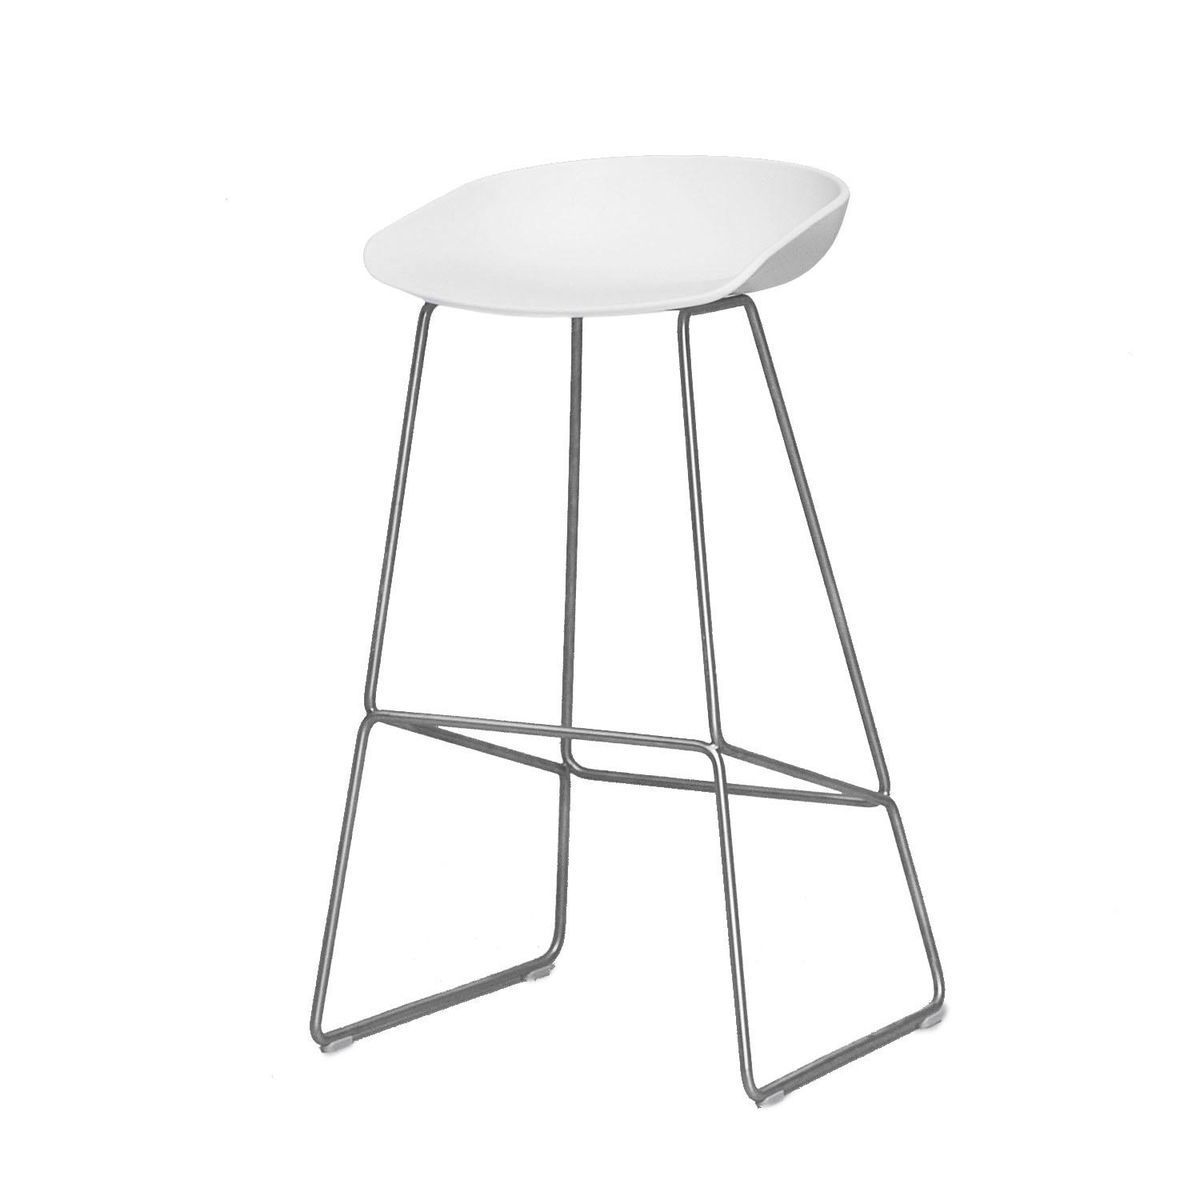 About A Stool Aas38 Bar Stool 65cm Hay Ambientedirect Com